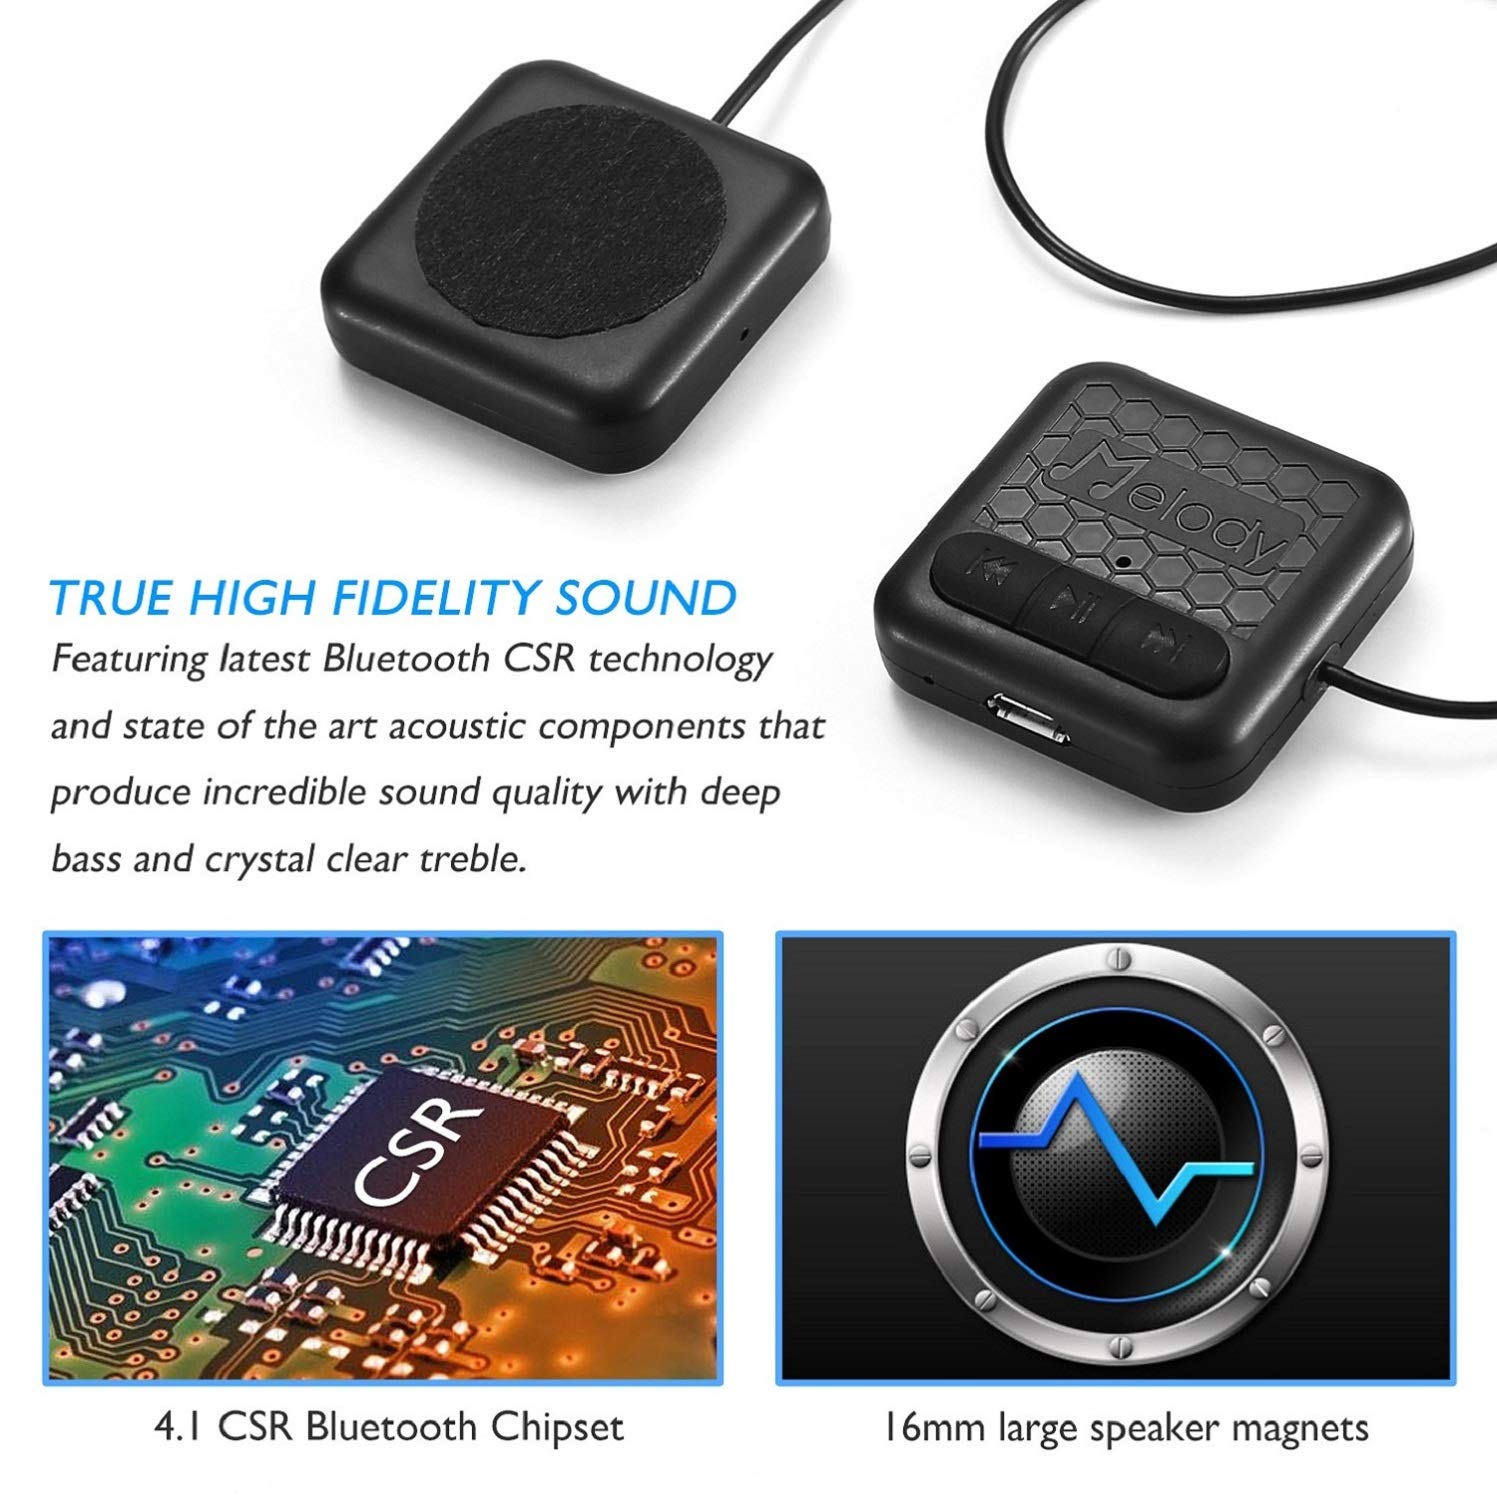 Pumice Bluetooth Beanie Hat Stylish Knitted Music Left Headphone Speaker Wiring Cap With Hd Stereo Headphones Earphones Headset Mic Hands Free Talking For